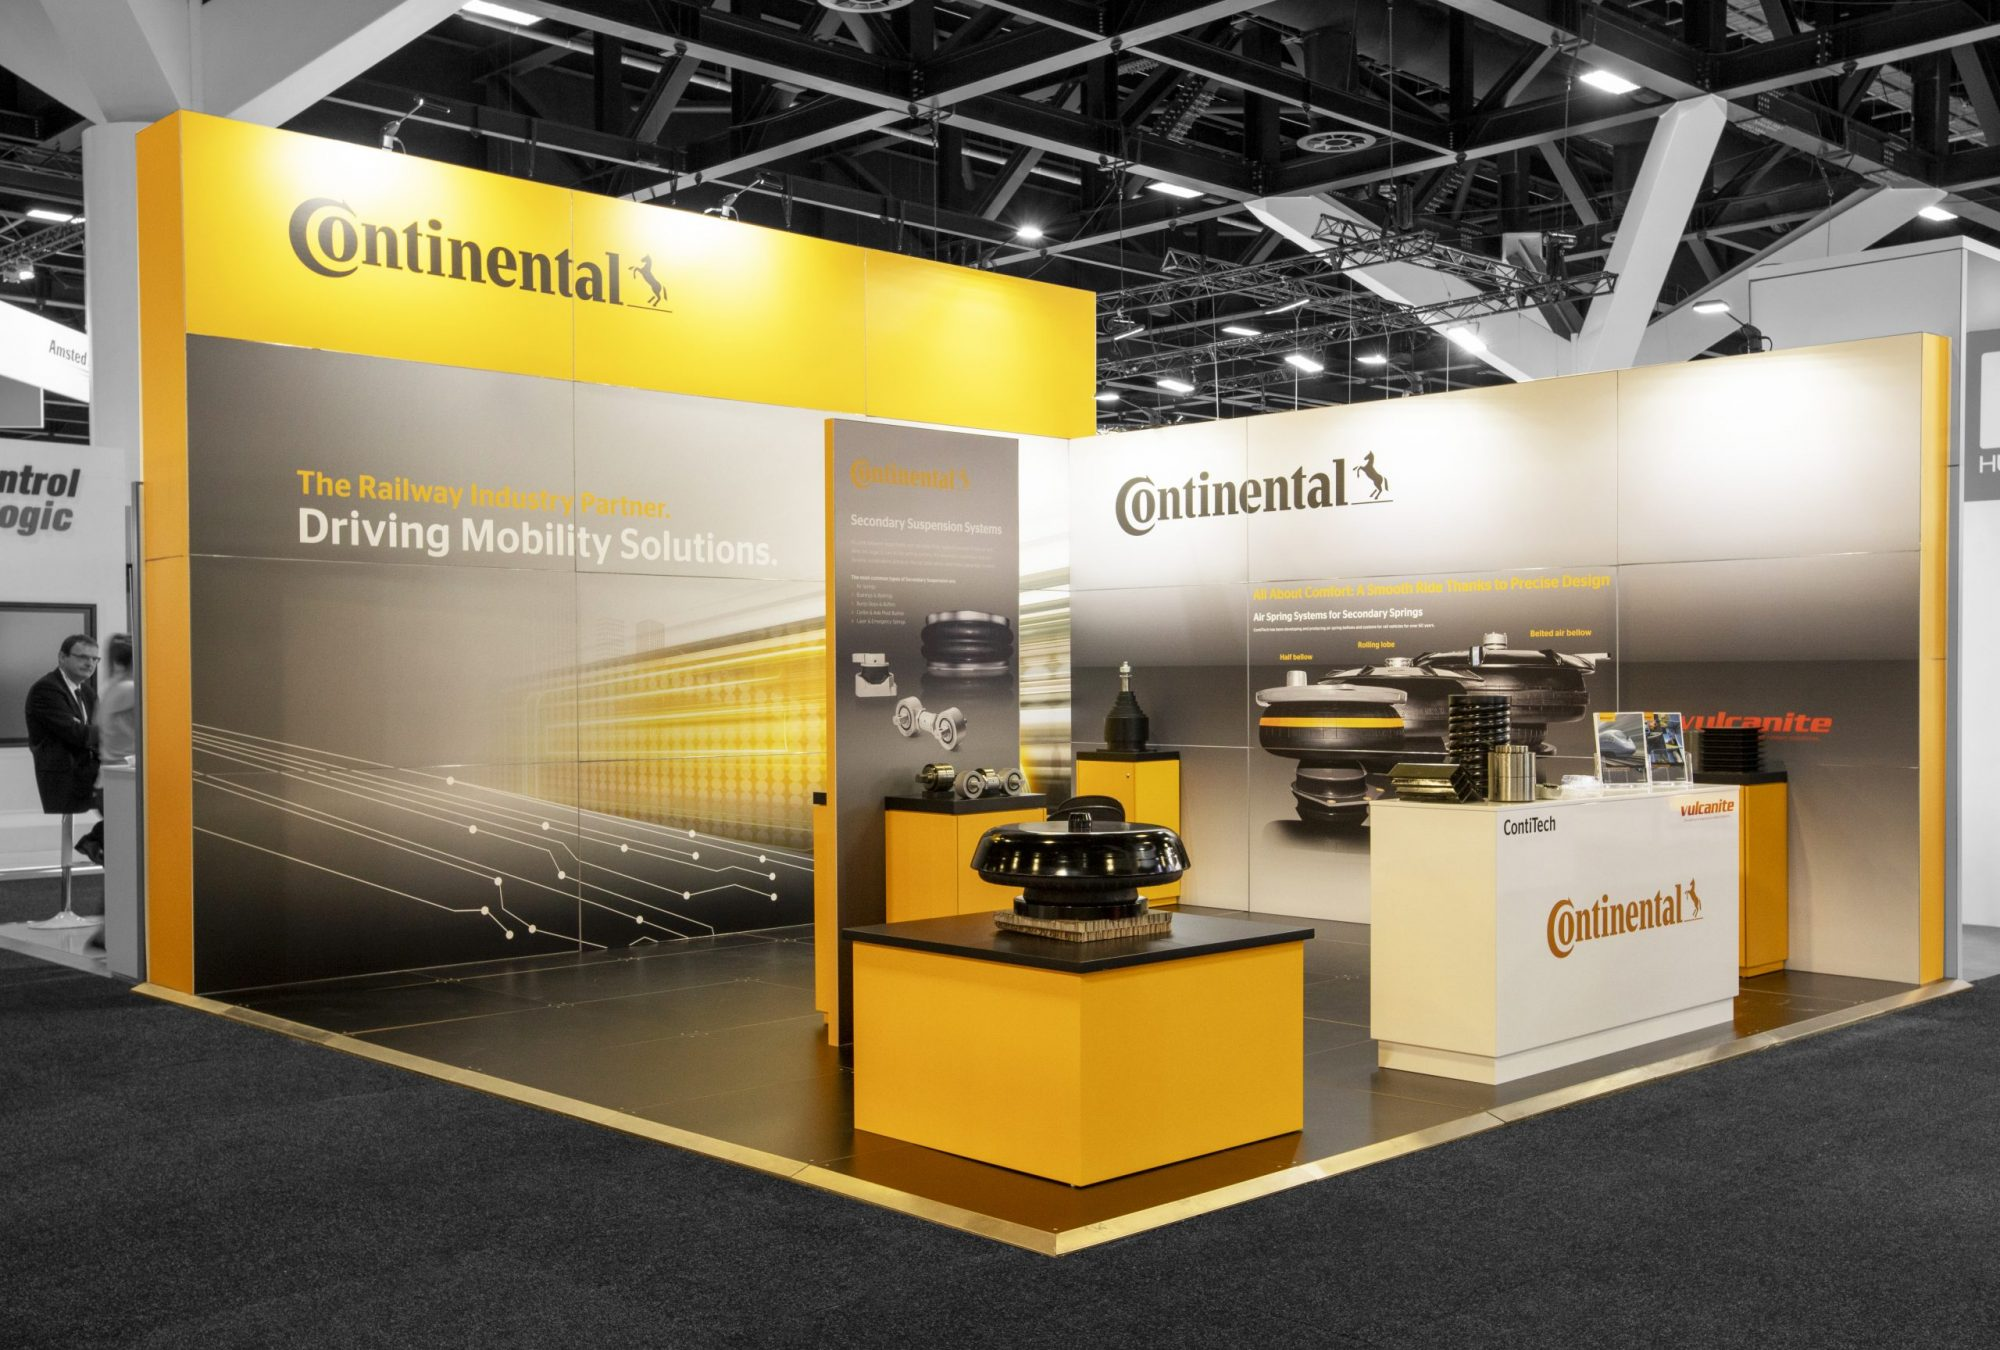 Continental/Vulcanite exhibition stand by Exhibitionco at AusRAIL 20219